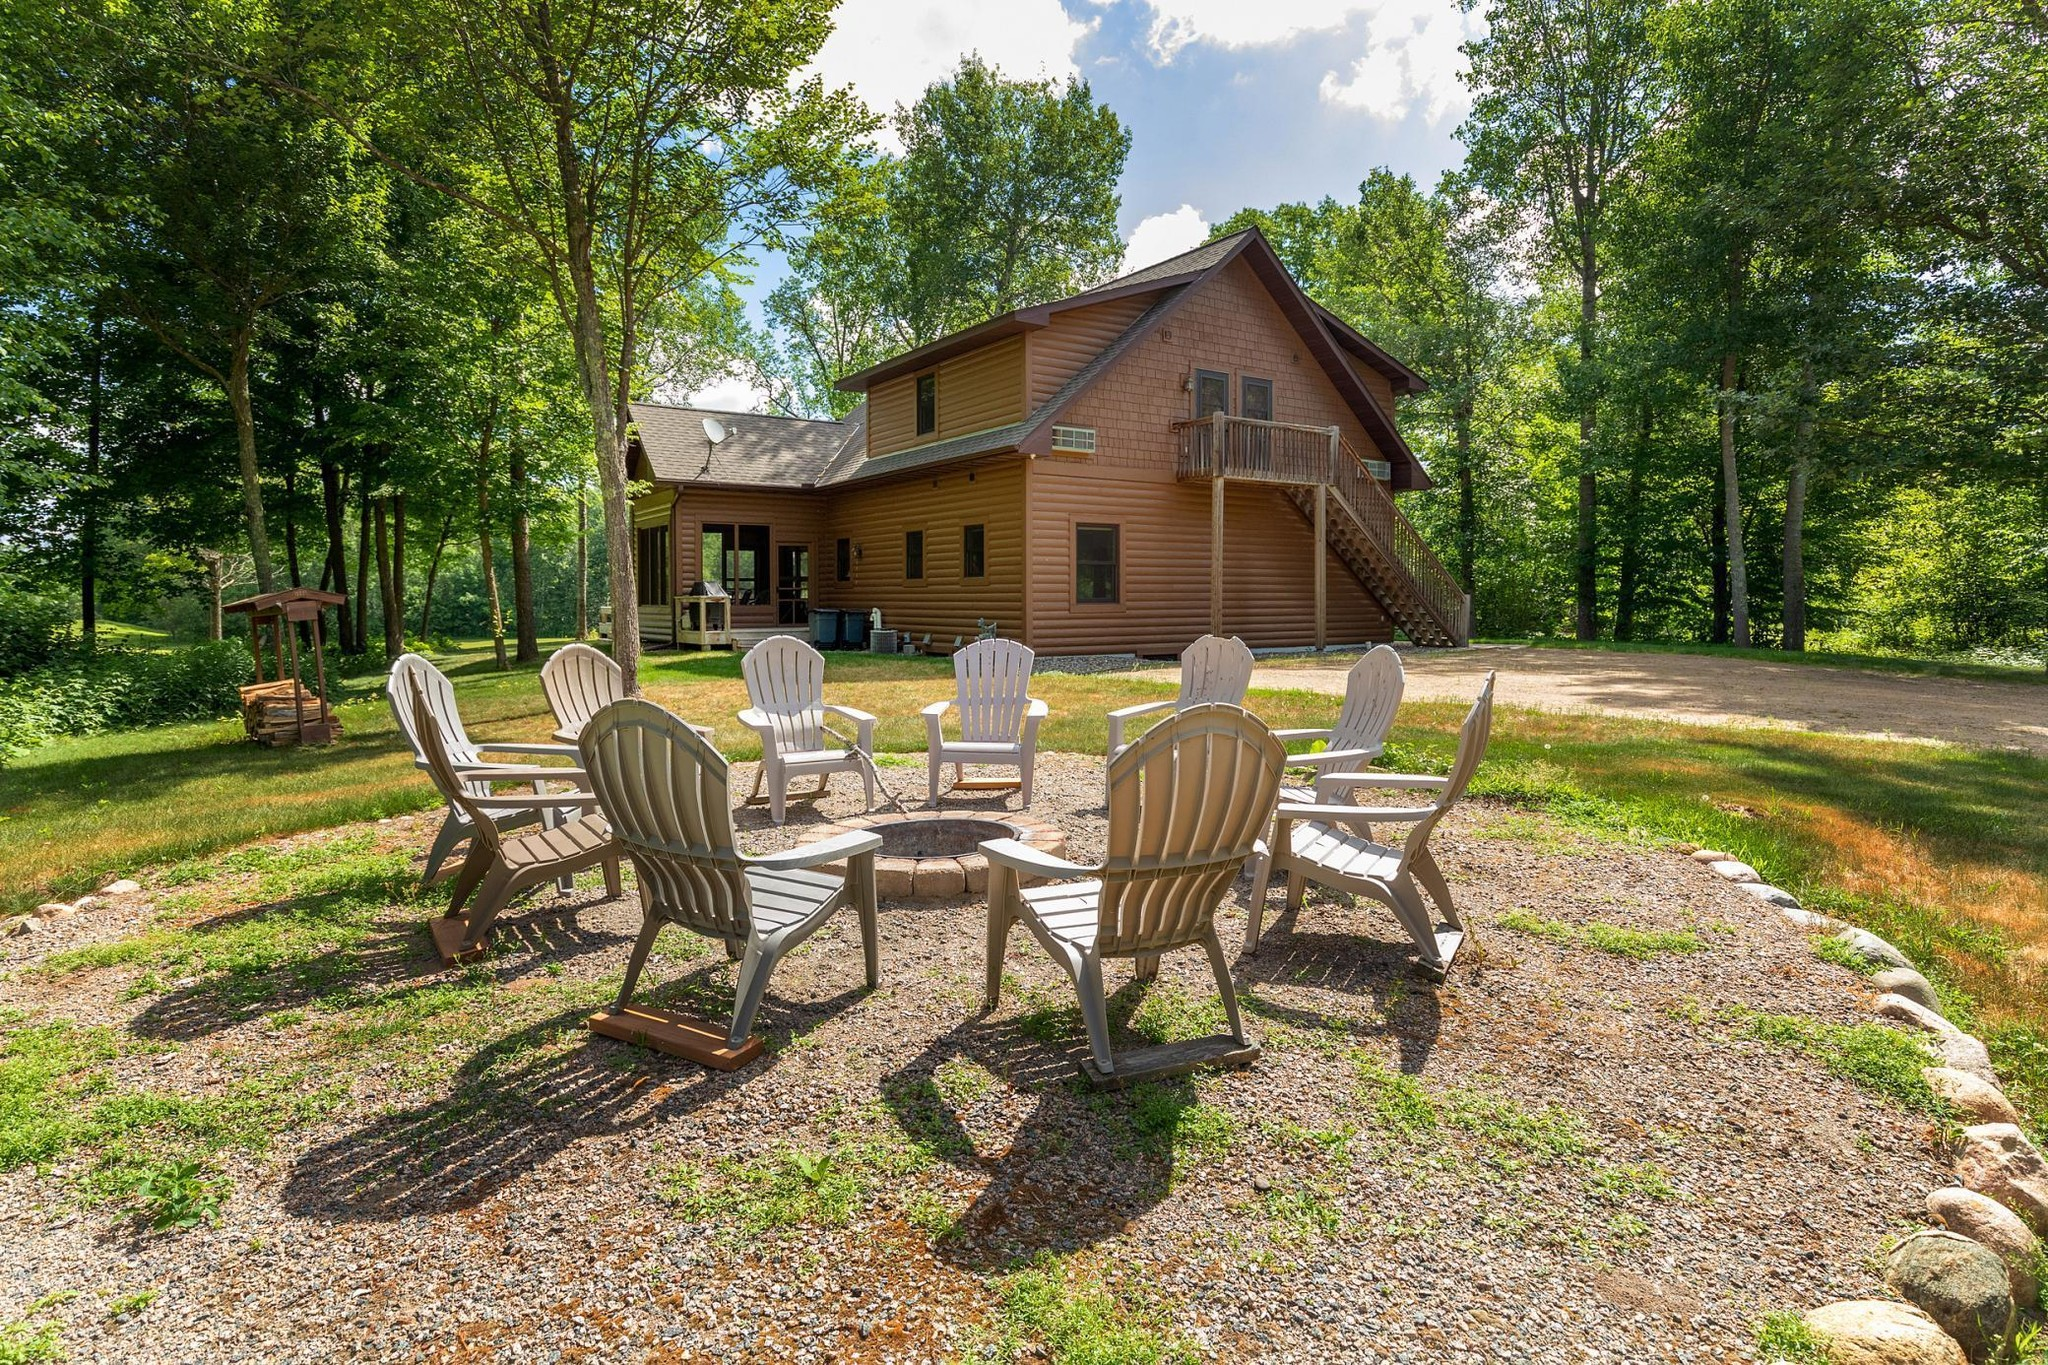 4-Bedroom House In Fifty Lakes